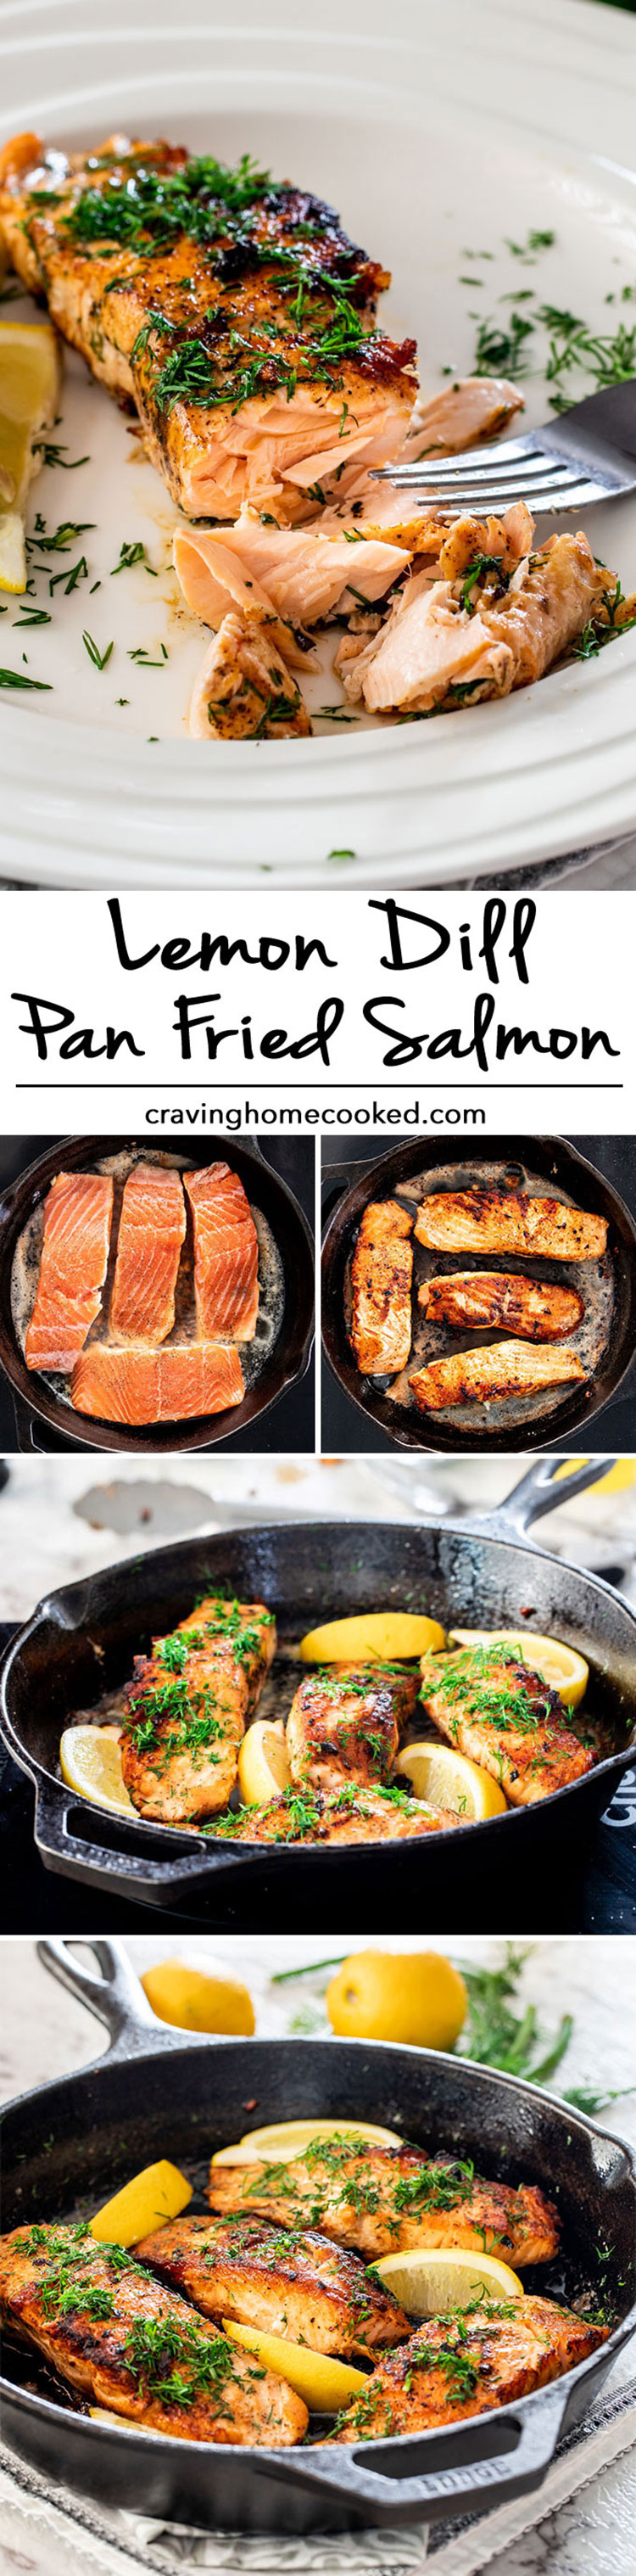 This Lemon Dill Pan Fried Salmon really is simplicity at its best. In 20 minutes you can have this incredibly delicious lemon dill salmon that requires only a handful of ingredients! #lemondillsalmon #salmon